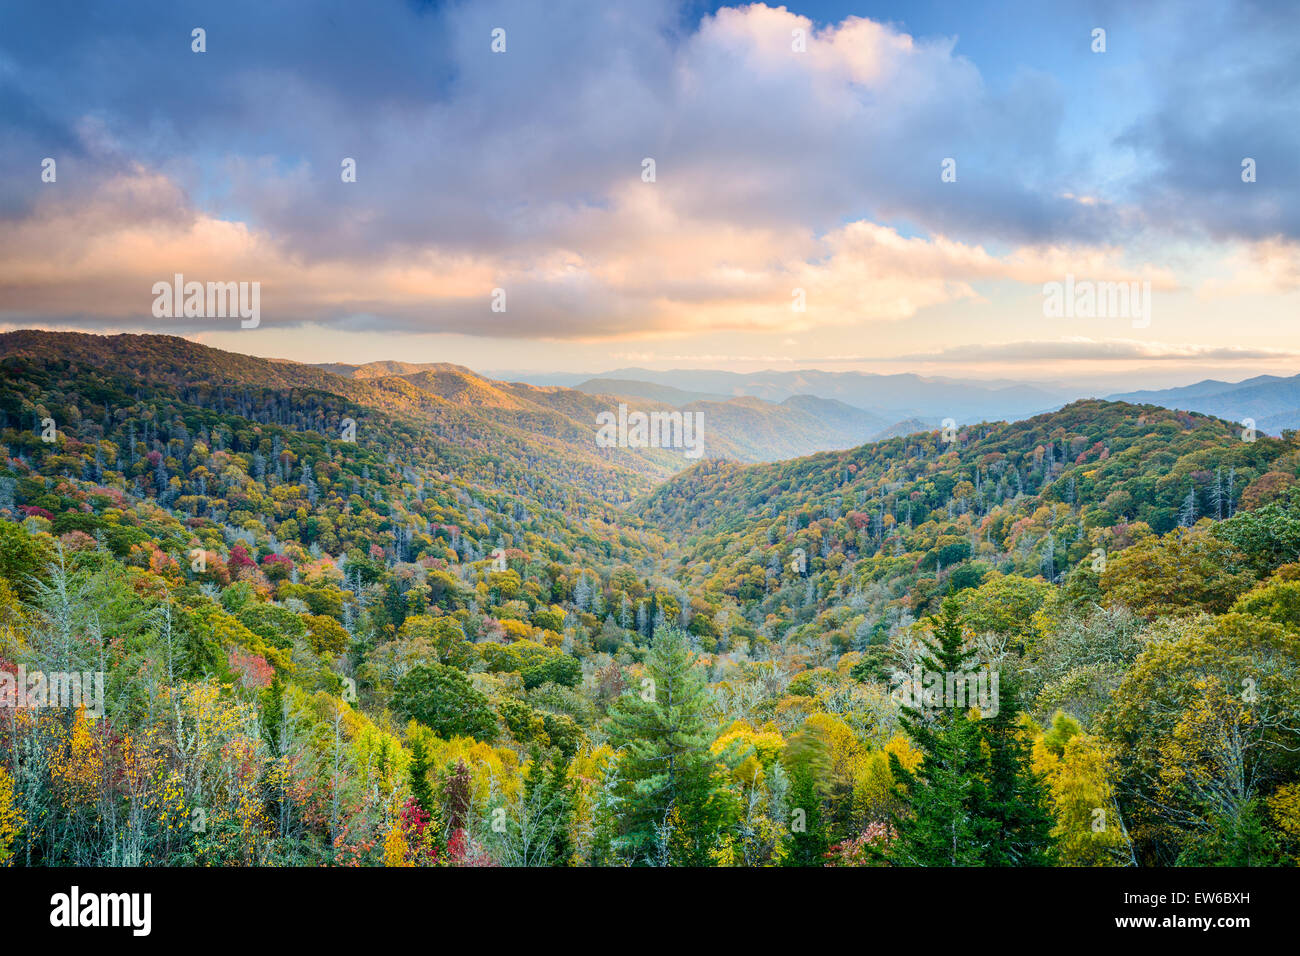 Smoky Mountains National Park, Tennessee, USA autumn landscape. - Stock Image